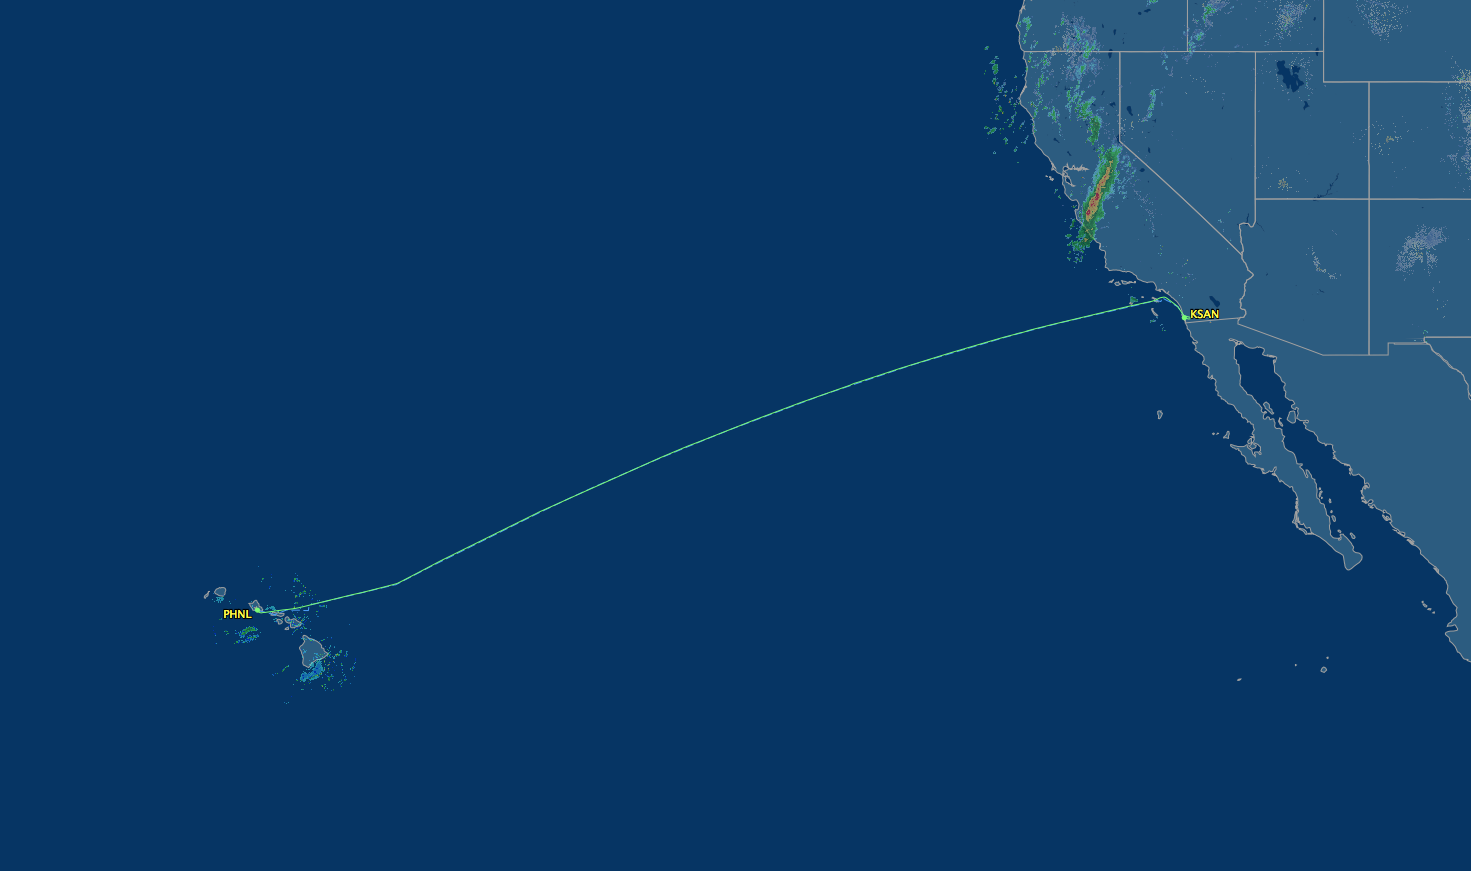 route from honolulu to san diego